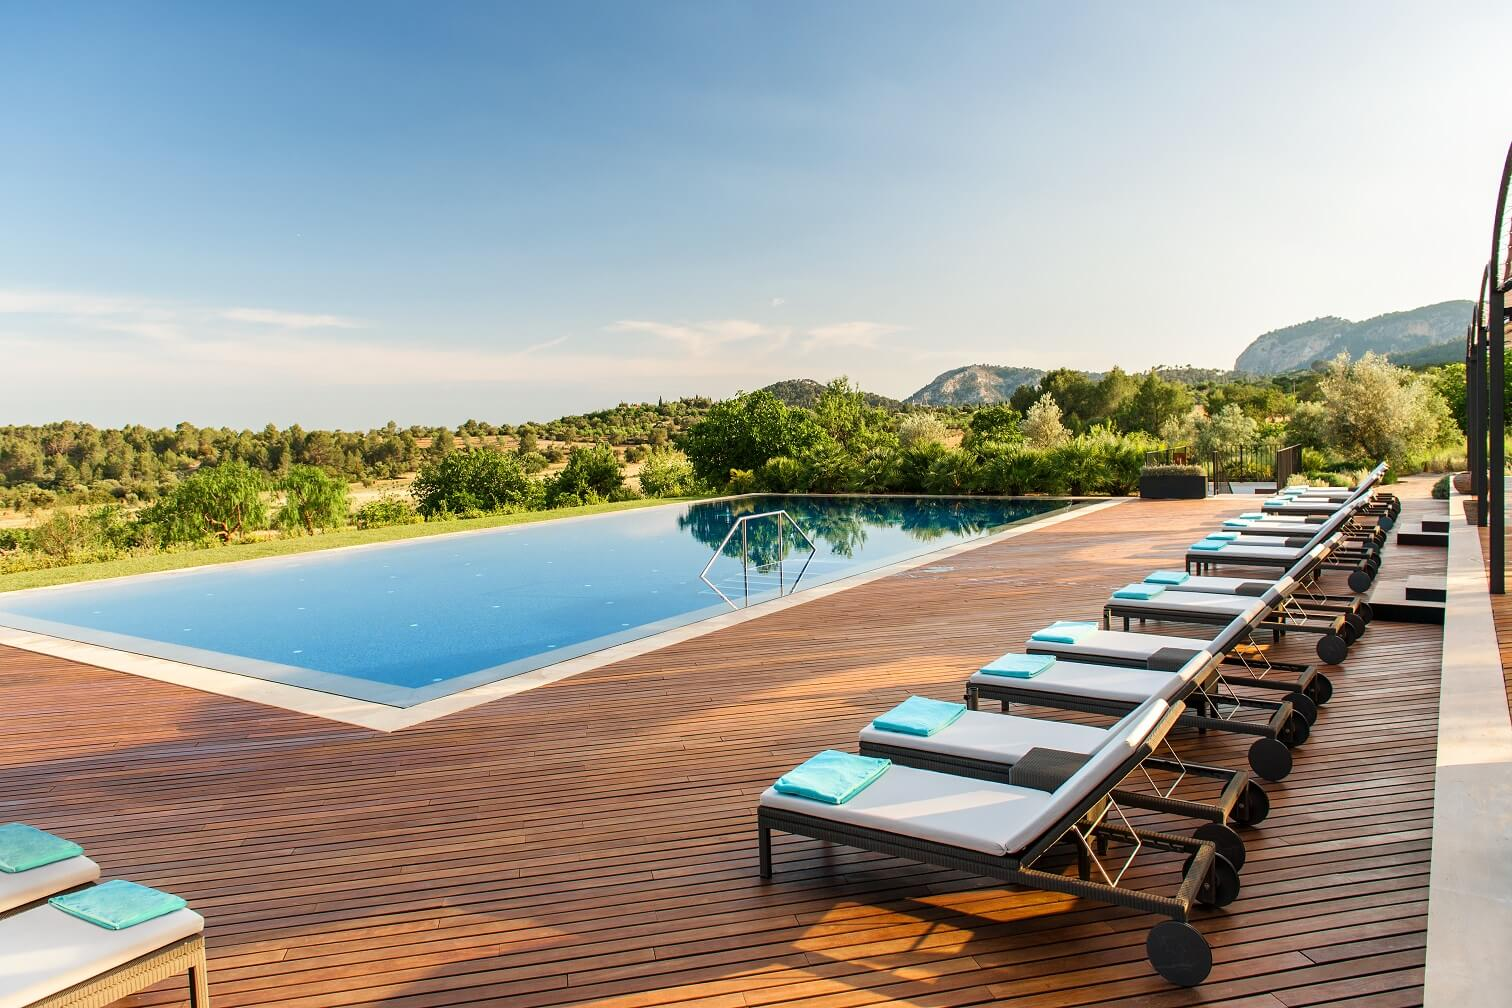 Outdoor Pool at the luxury hotel in Mallorca, Castell Son Claret